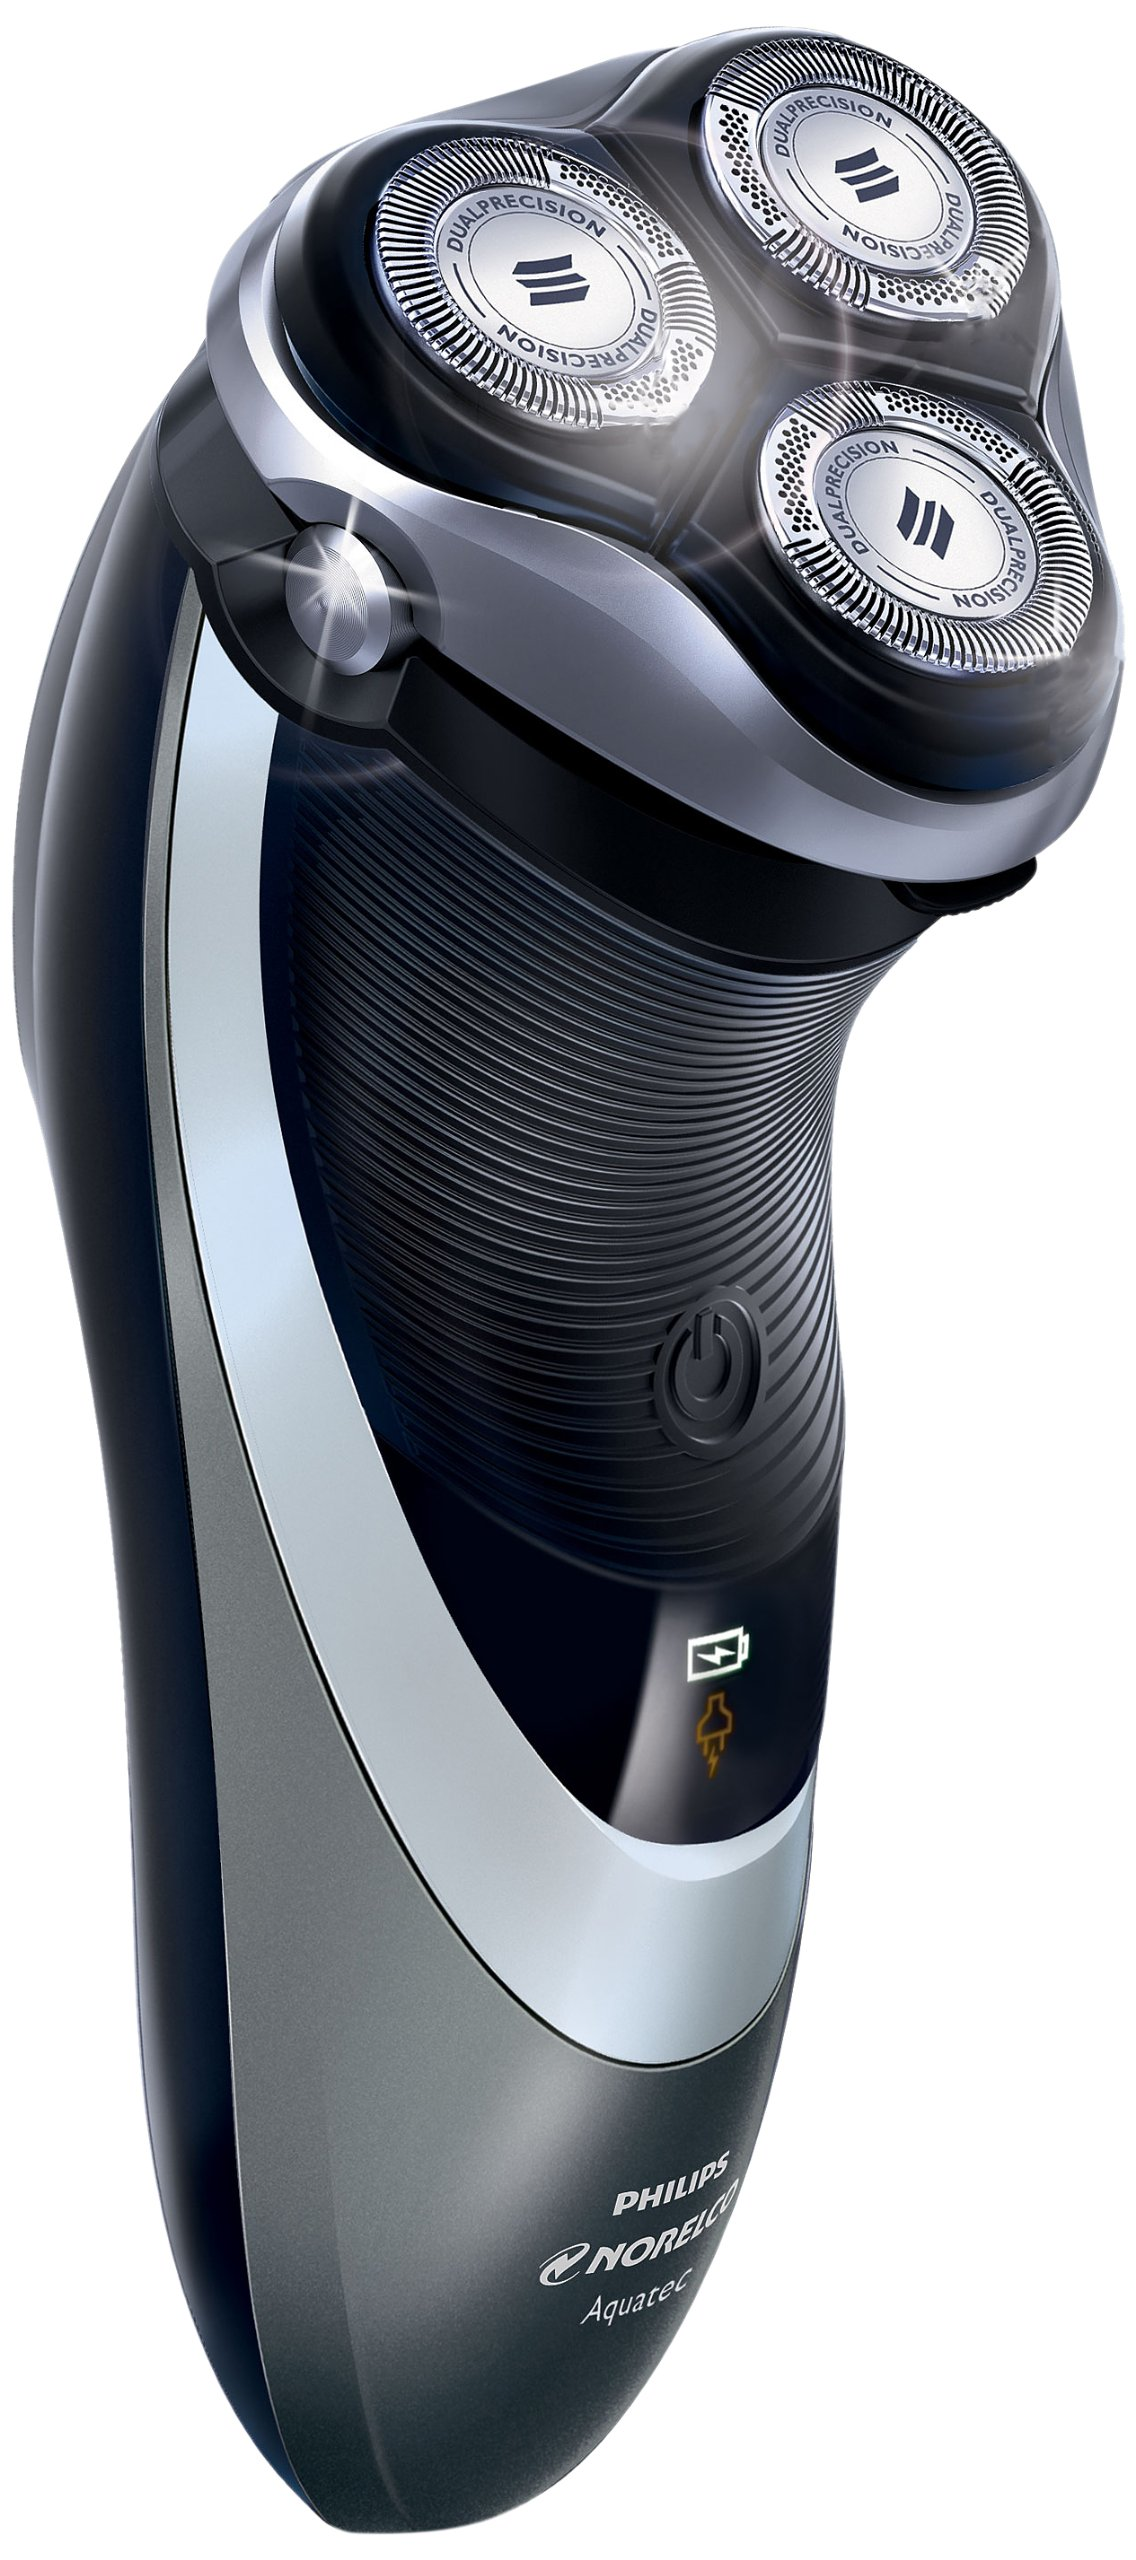 Philips Norelco Shaver 4500 (Model AT830/46) Frustration Free Packaging by Philips Norelco